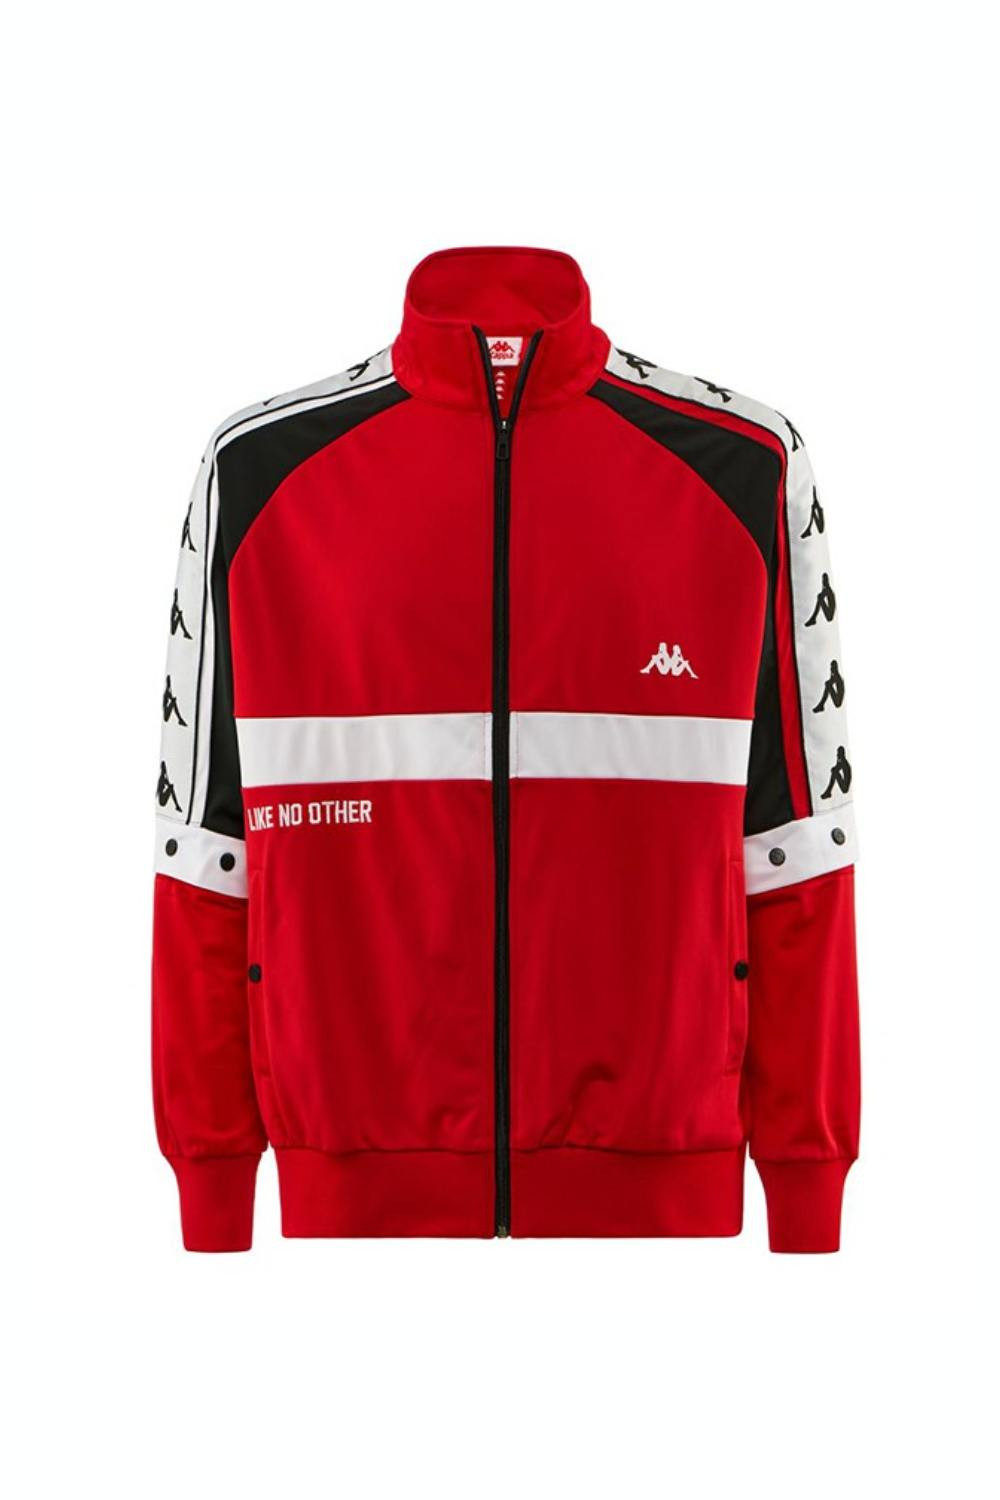 Kappa Authentic Bafer Track Jacket - Red/Black/White